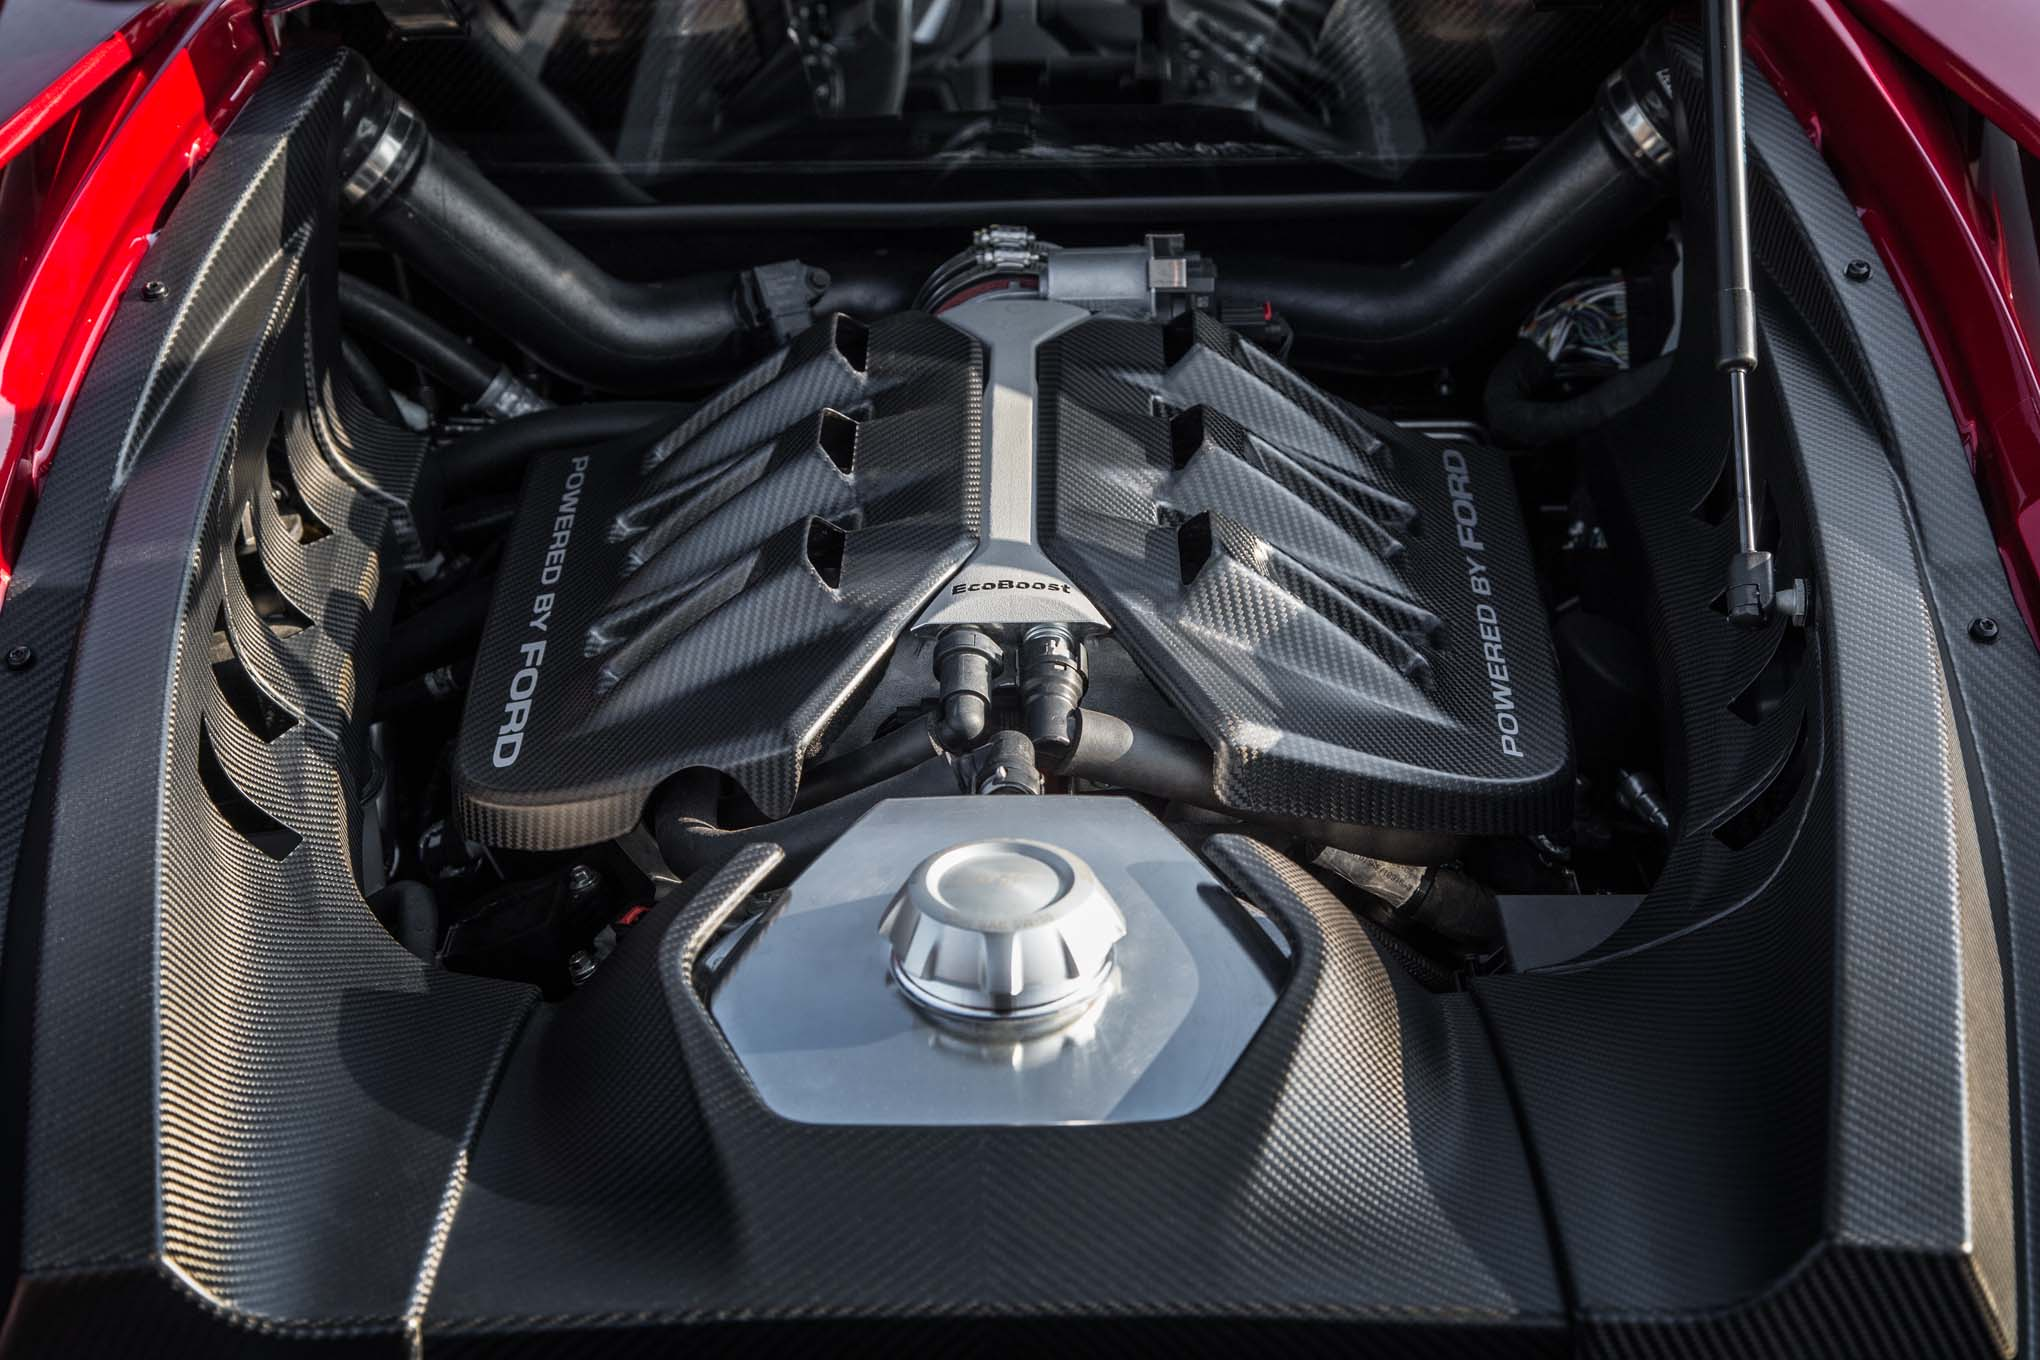 Ford GT -engine - under the hood - photo via MotorTrend CA